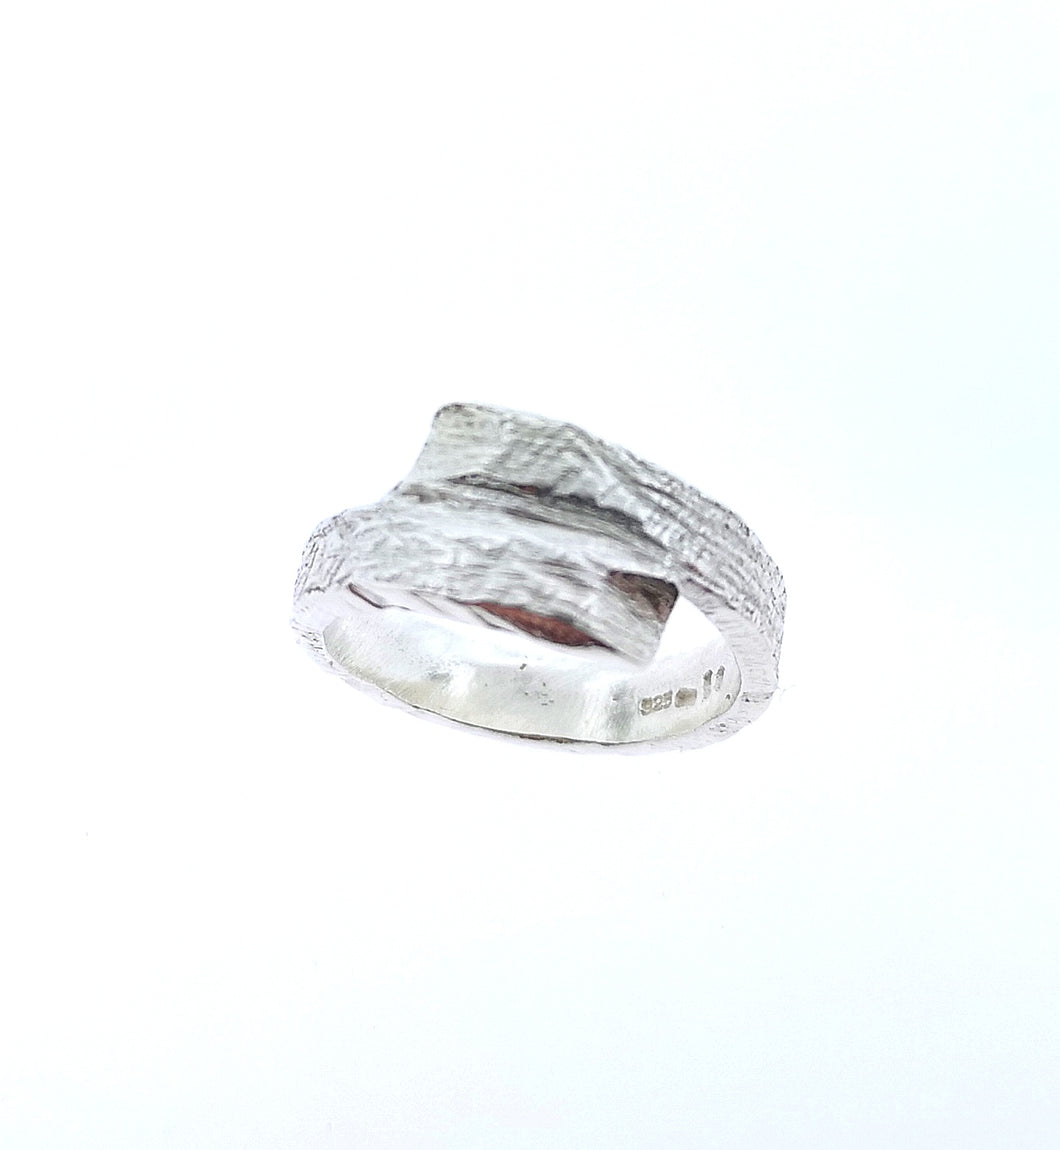 Driftwood Wrap Over Ring - Sterling Silver